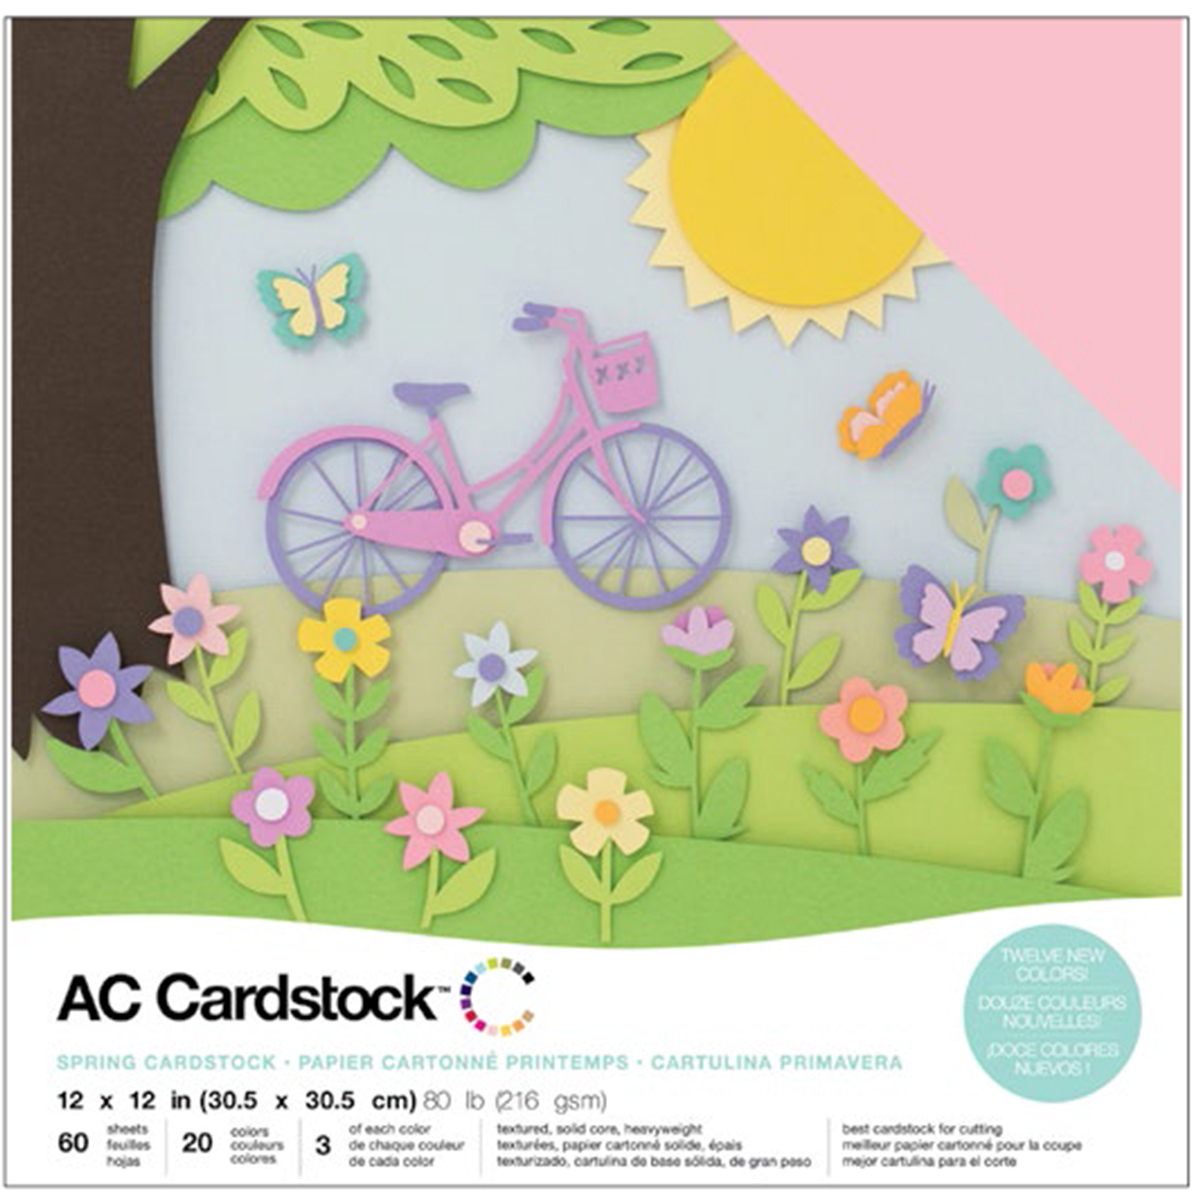 AC CARDSTOCK 12X12 Textured Solid Core - 60 Sheets - 20 Colors - 3 of each - Spring Collection